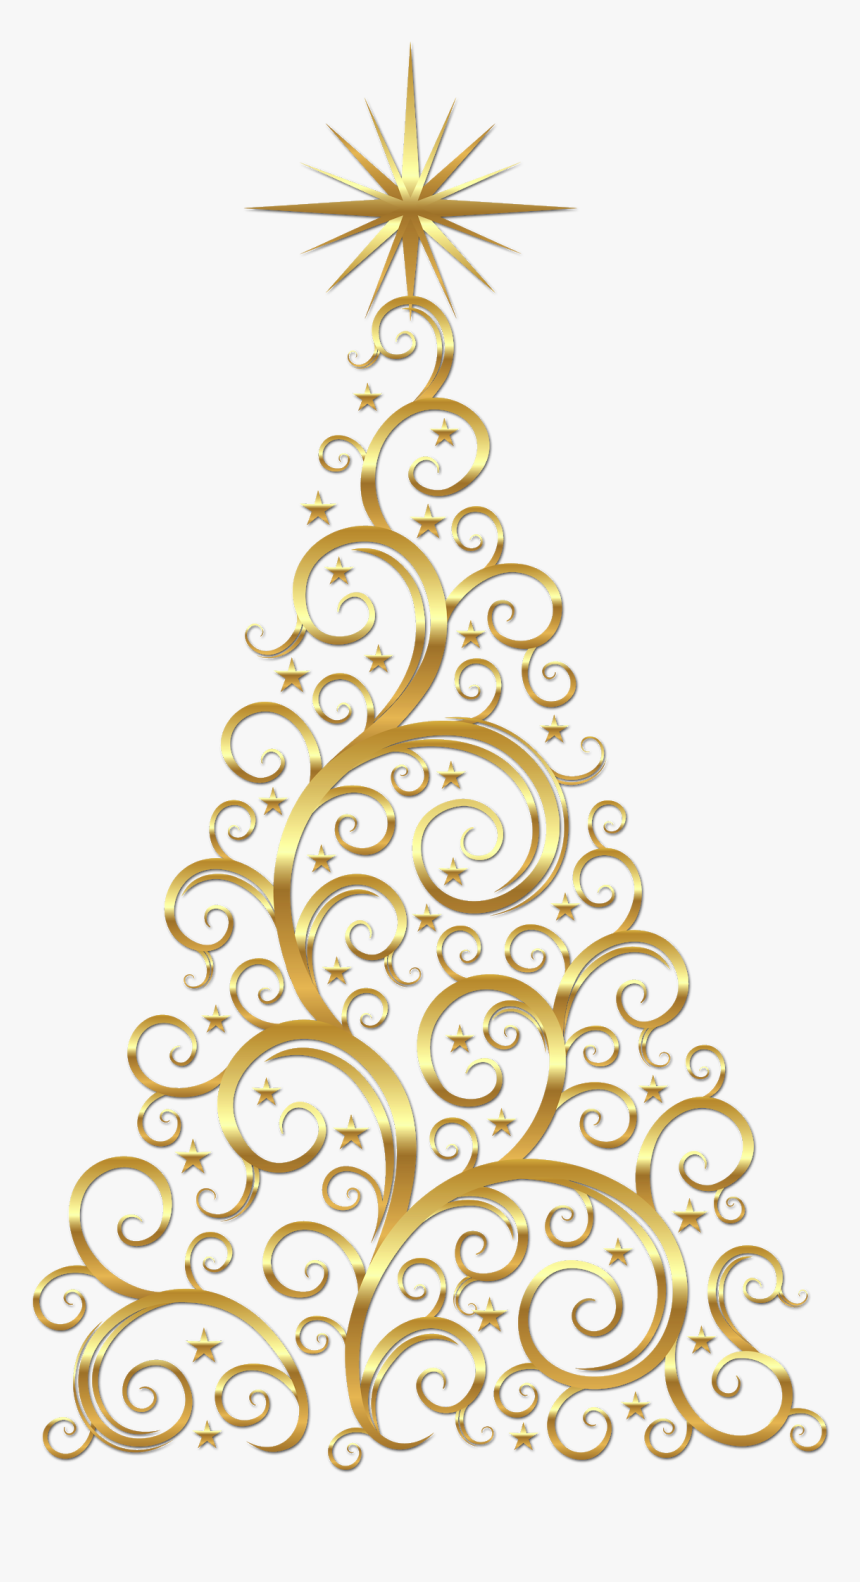 Gold Christmas Tree Clipart, HD Png Download, Free Download